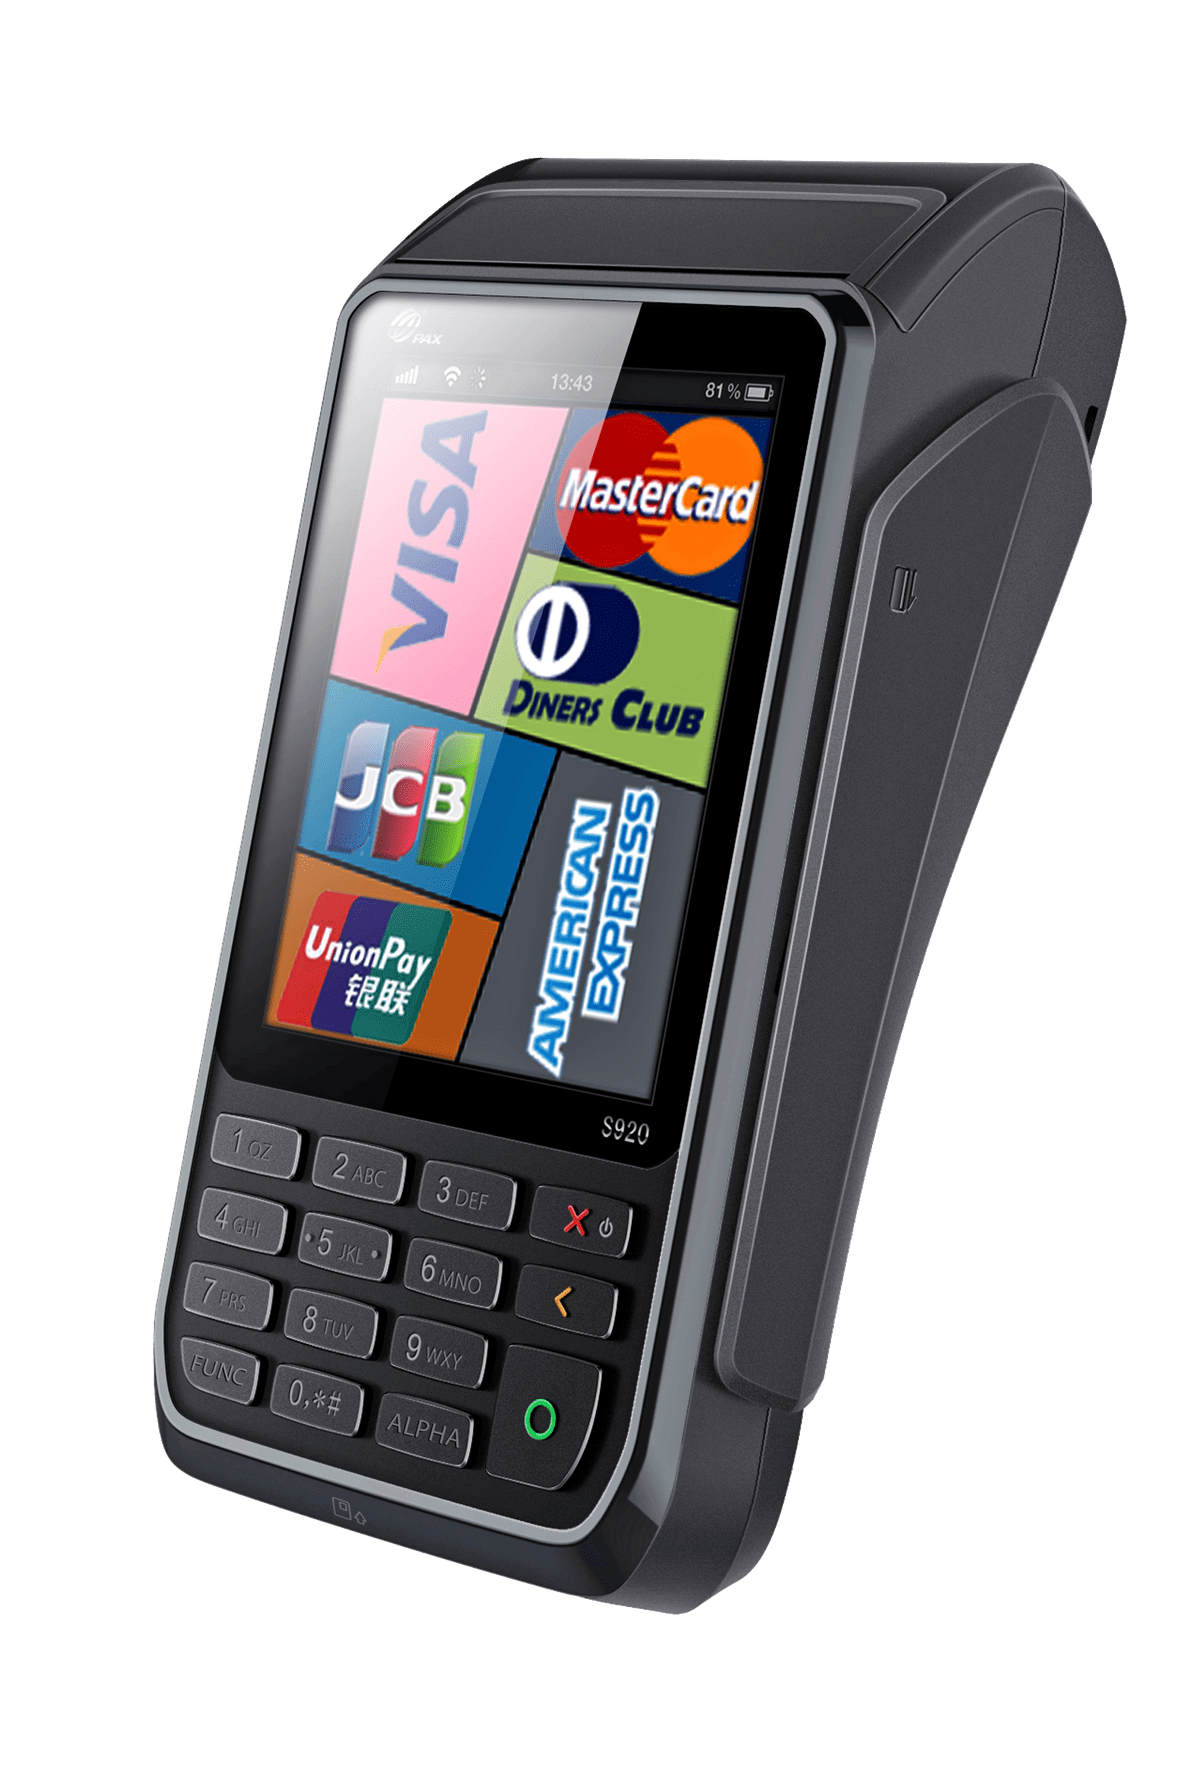 PAX S920 mobile wireless POS terminal